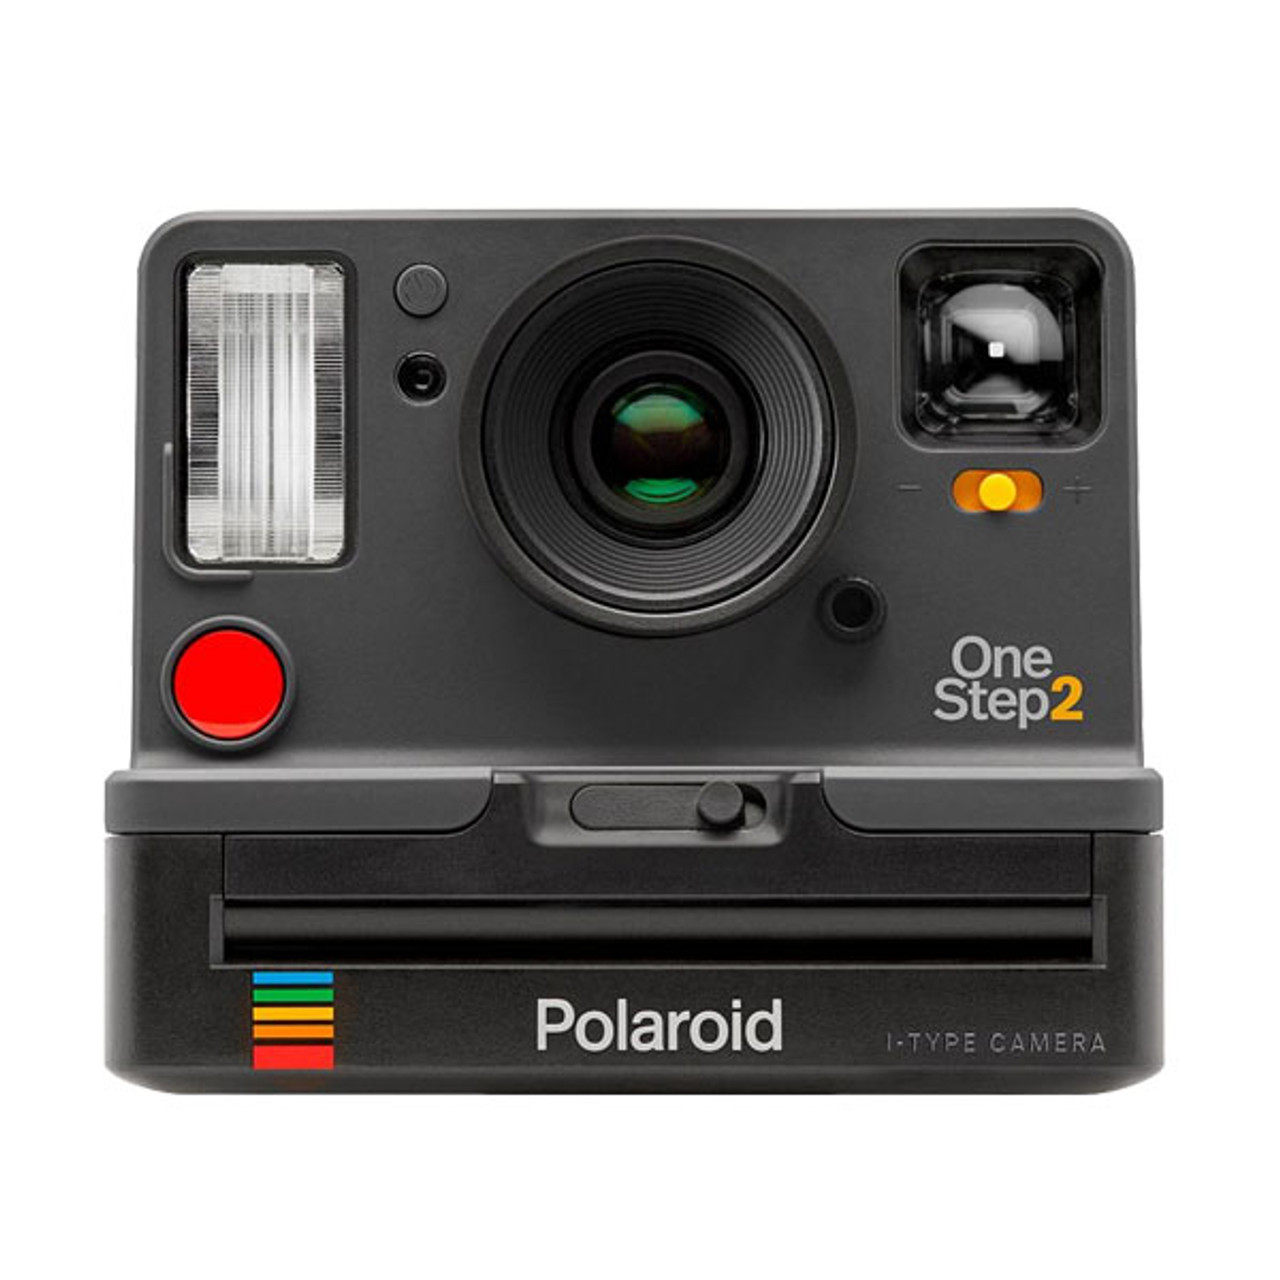 Polaroid OneStep 2 Viewfinder i-Type Camera (Graphite)